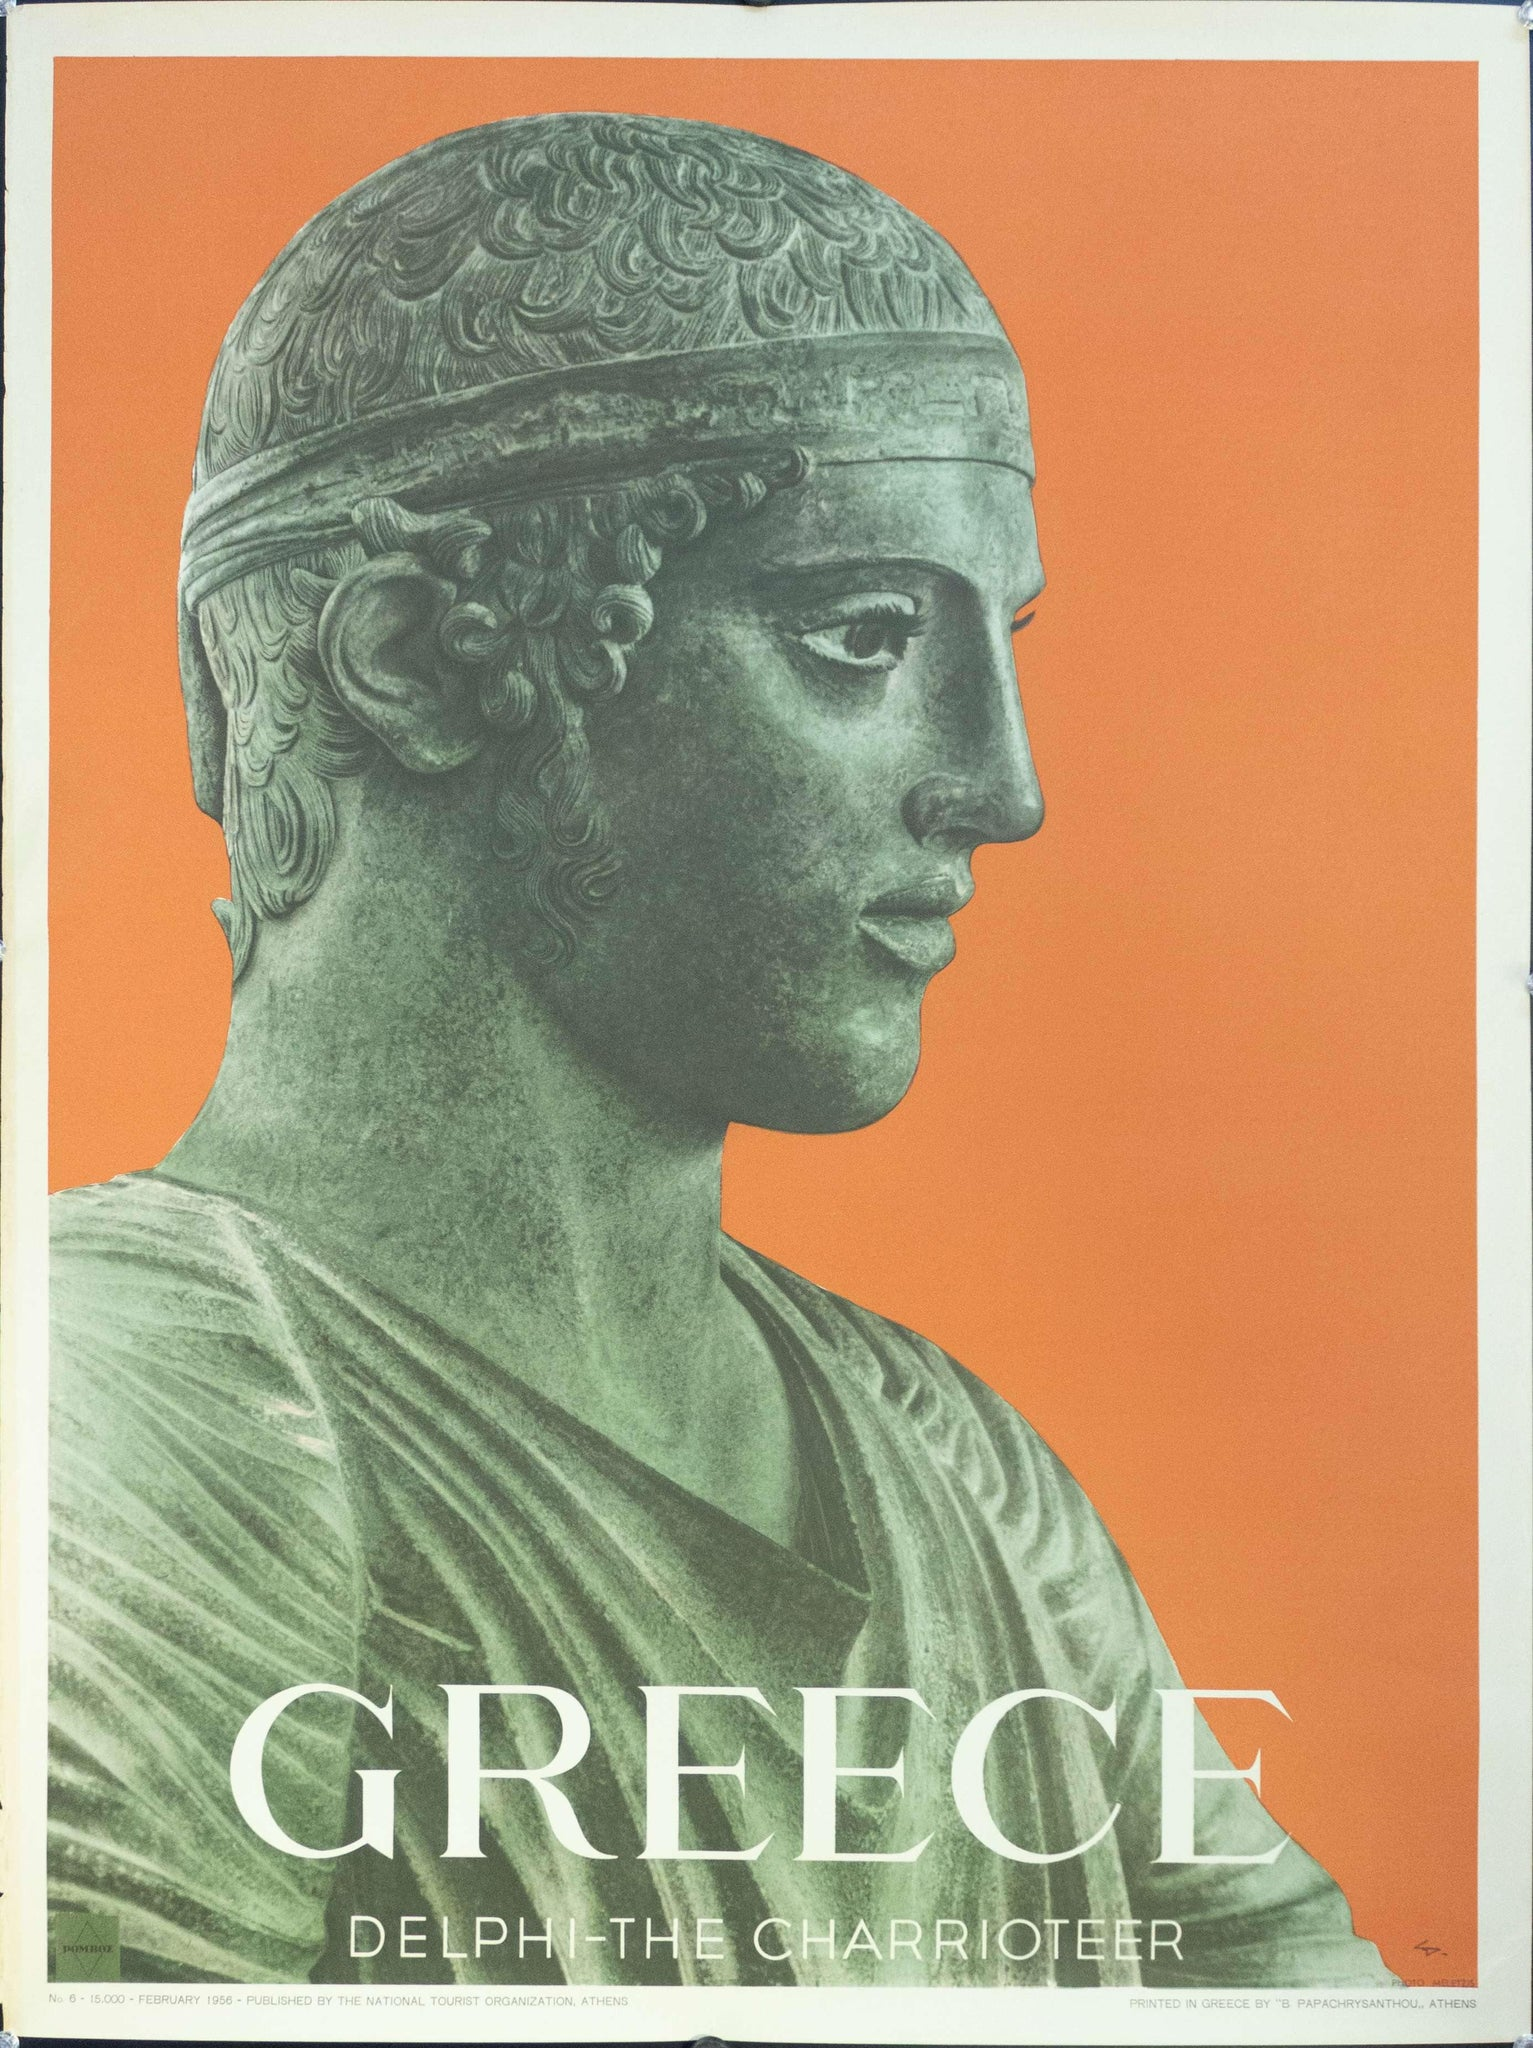 1956 Greece | Delphi - The Charioteer